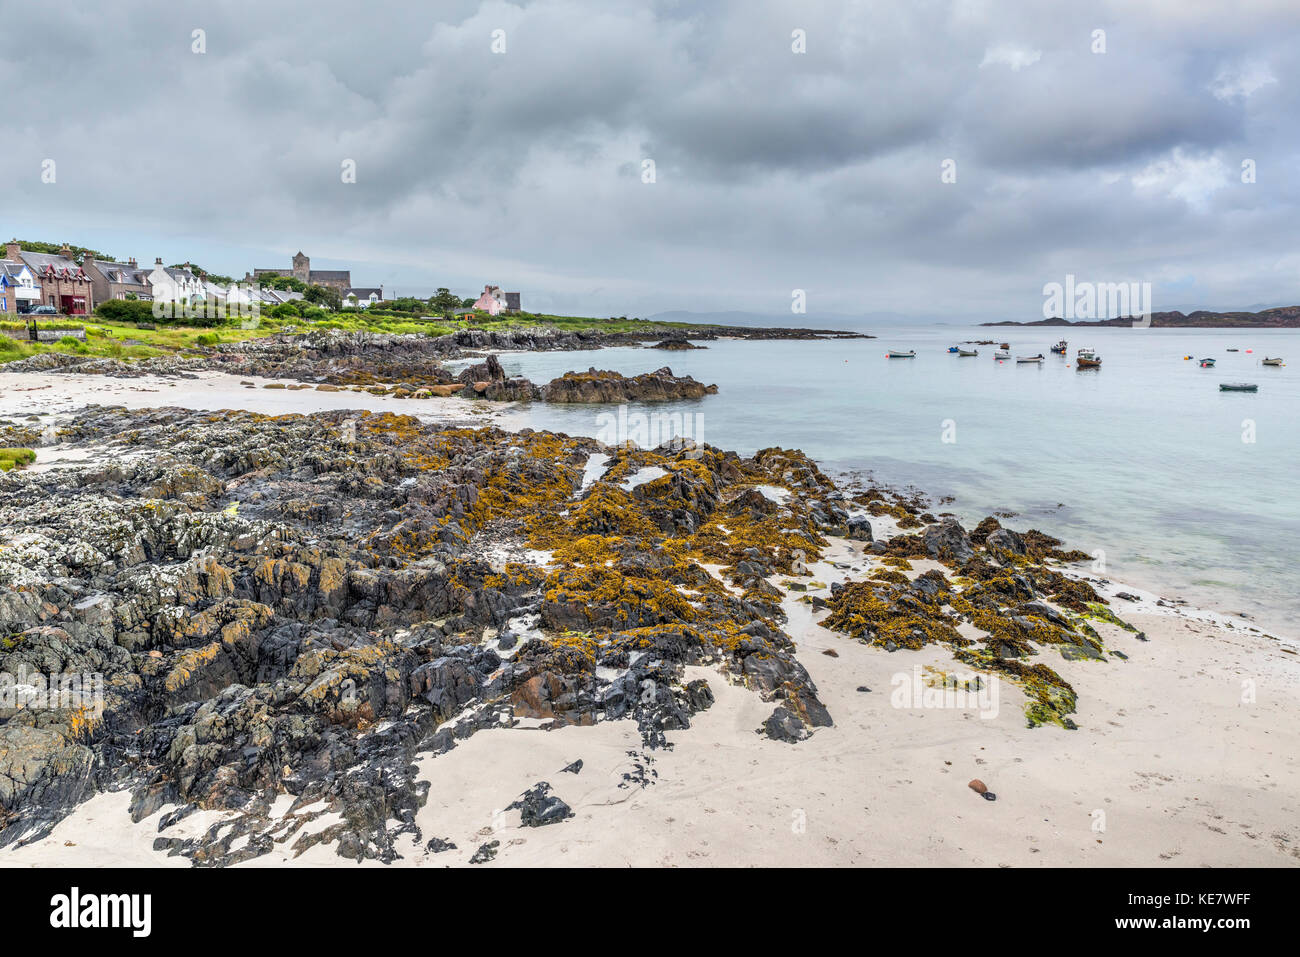 Beach on the east coast of the Isle of Iona, near to the Ferry to Mull, Argyll and Bute, Scotland, UK - Stock Image